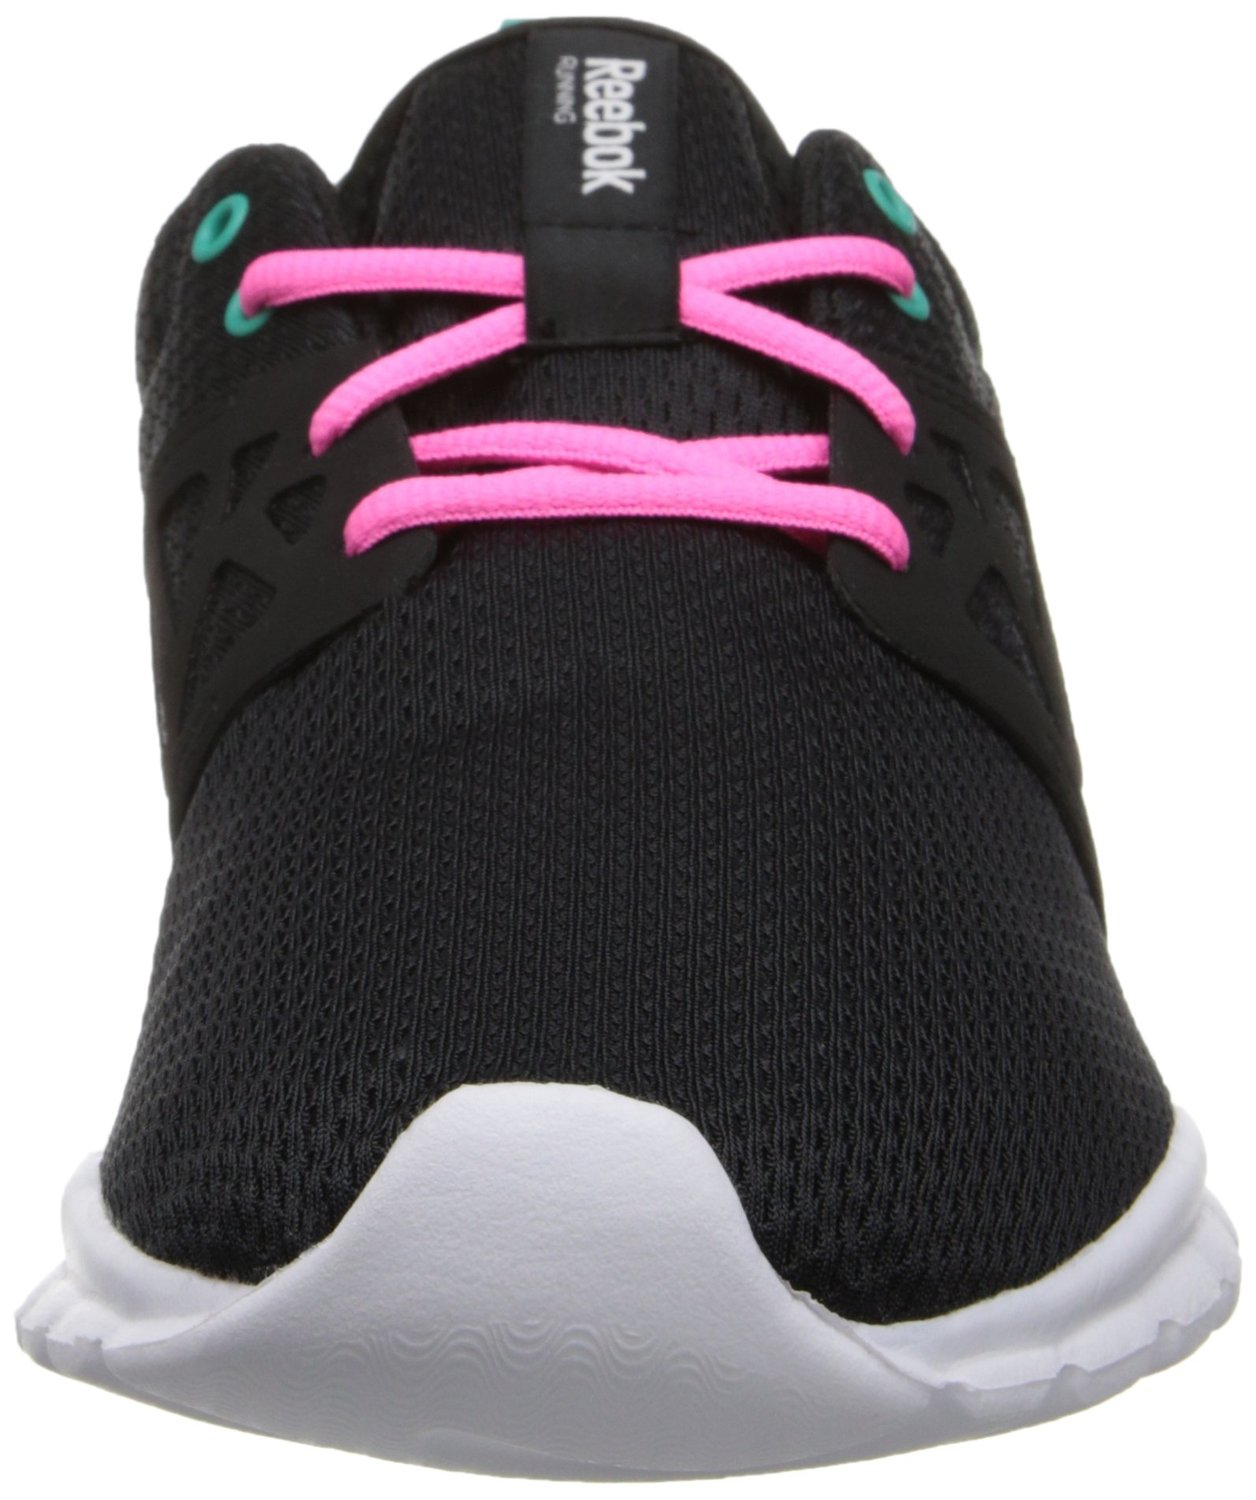 Reebok Women s Sublite Authentic Running Shoe - Black Pink - Size  9 ... ee4aab439